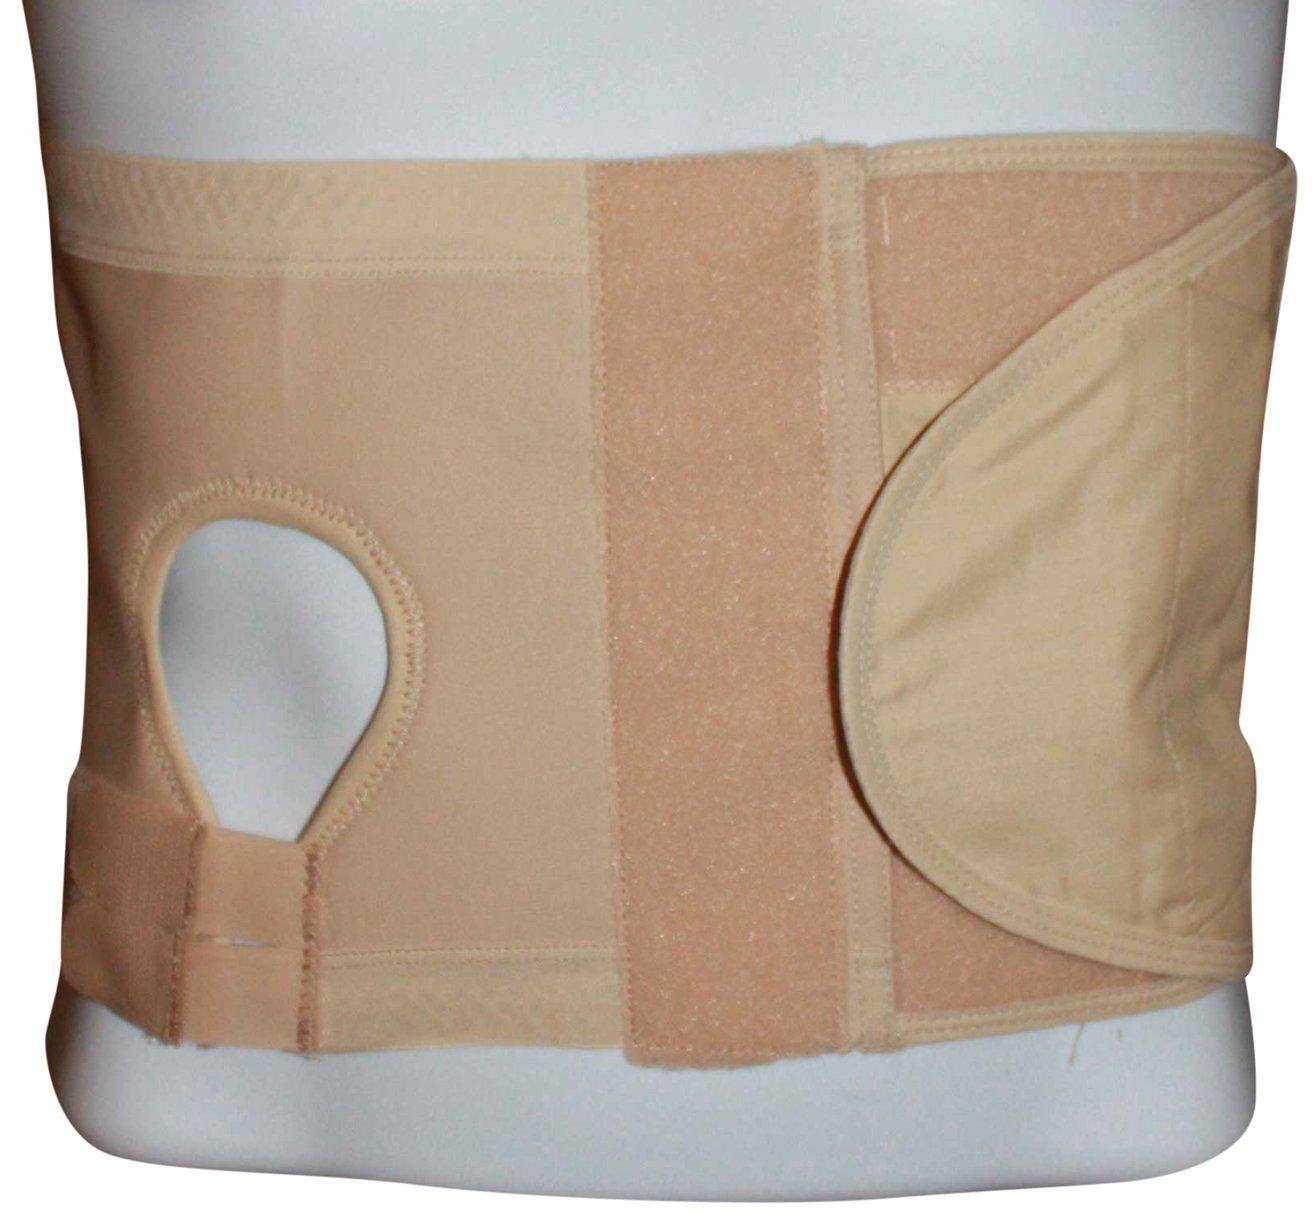 Safe n' Simple Left Hernia Support Belt with Adjustable Hole, 20cm, Beige, Medium by Safe n' Simple